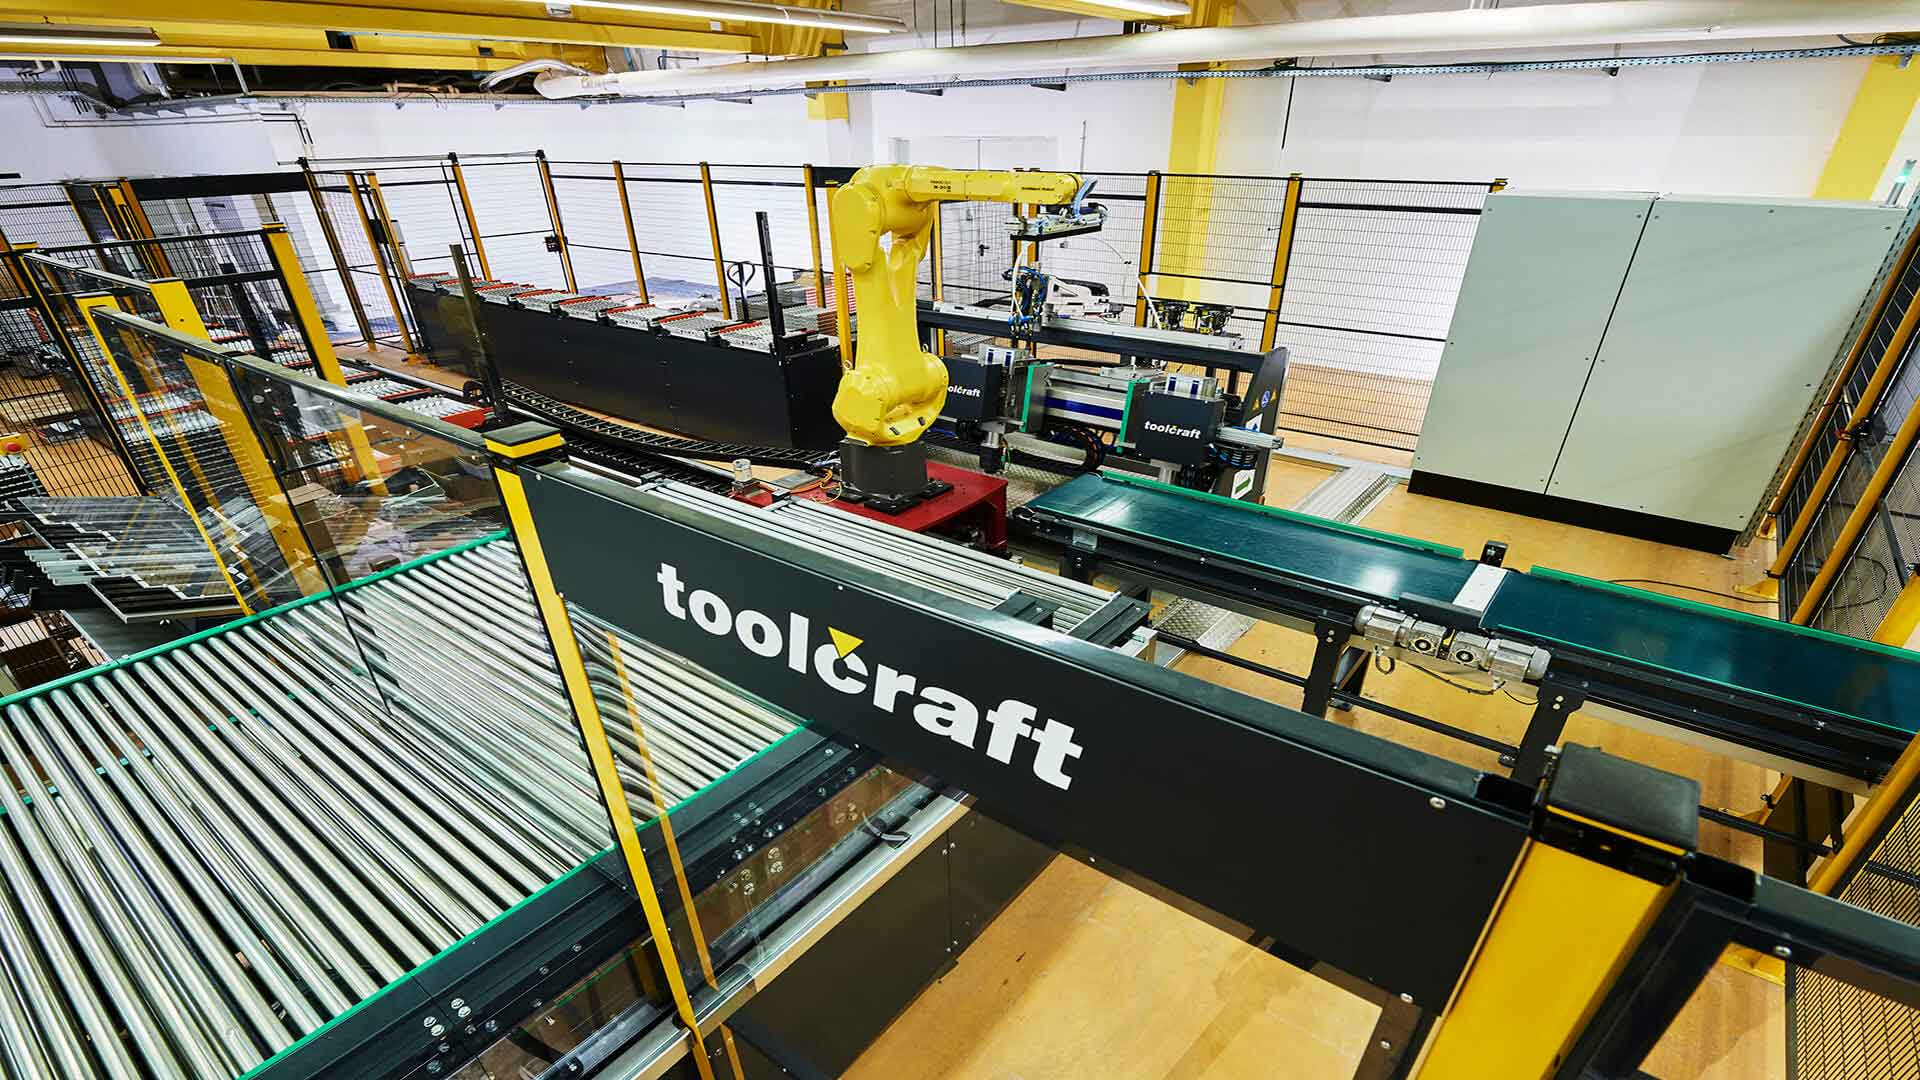 Toolcraft production line robot